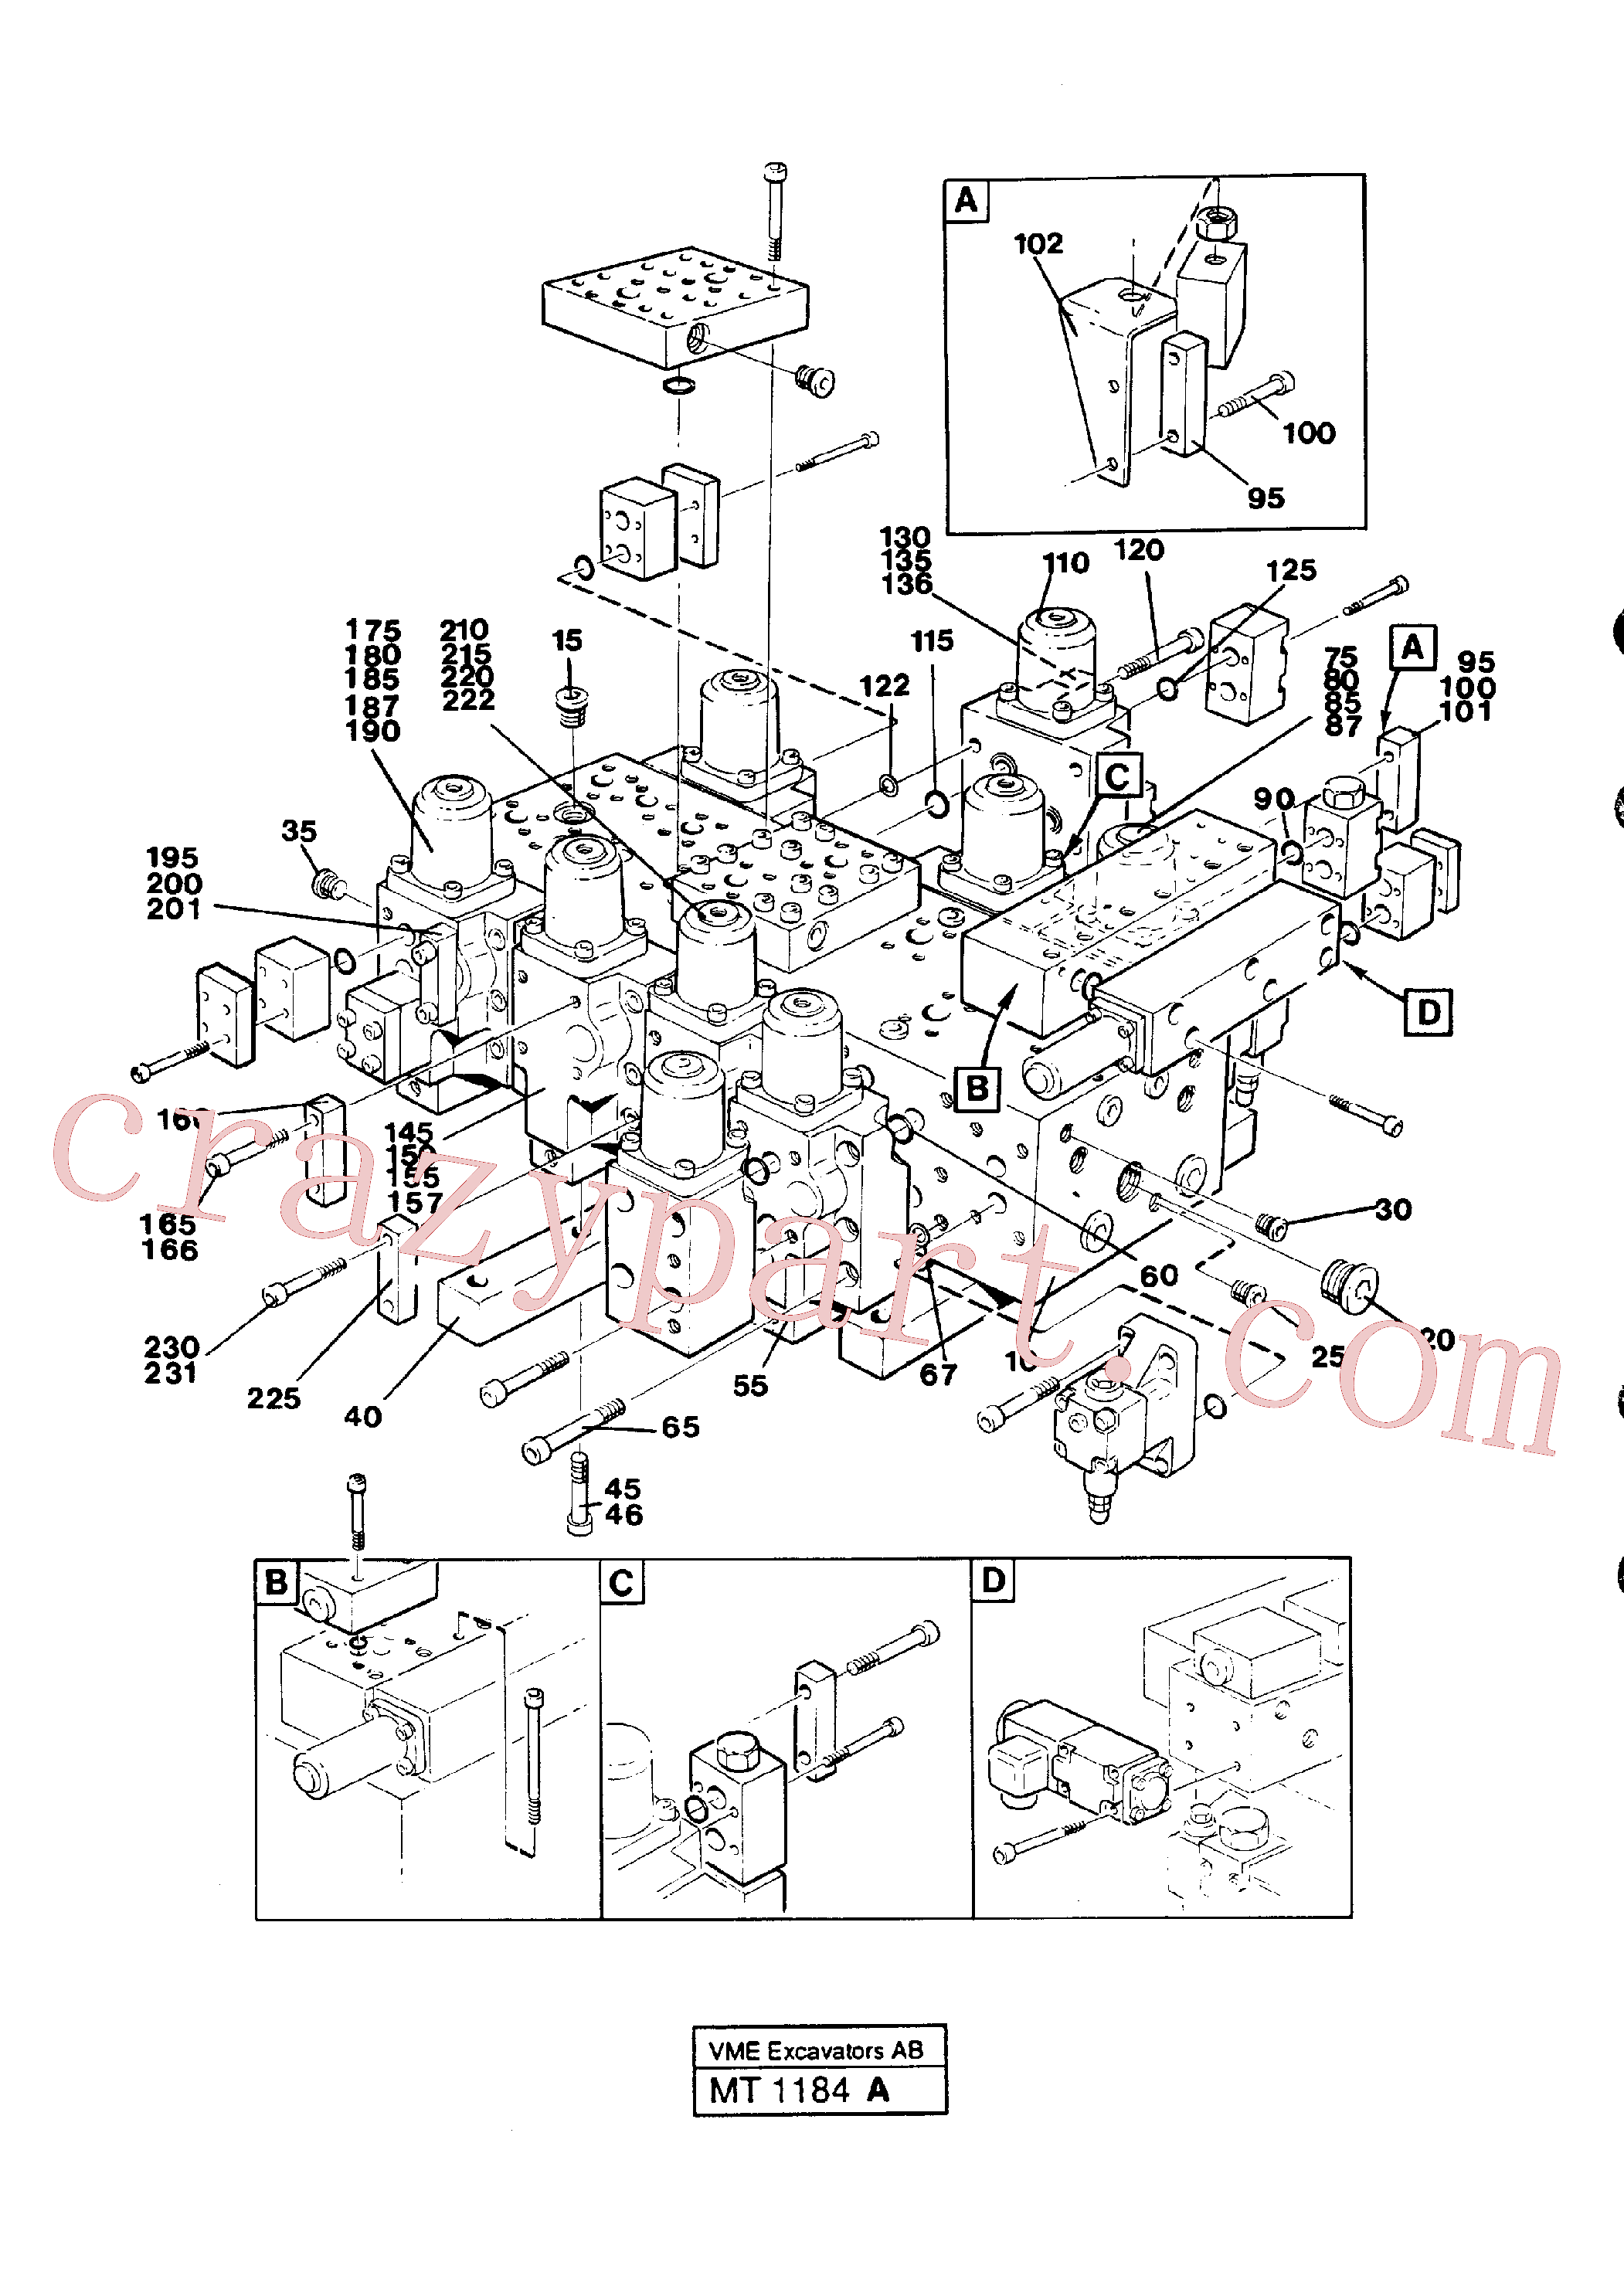 VOE959213 for Volvo Main valve assembly(1184A assembly)